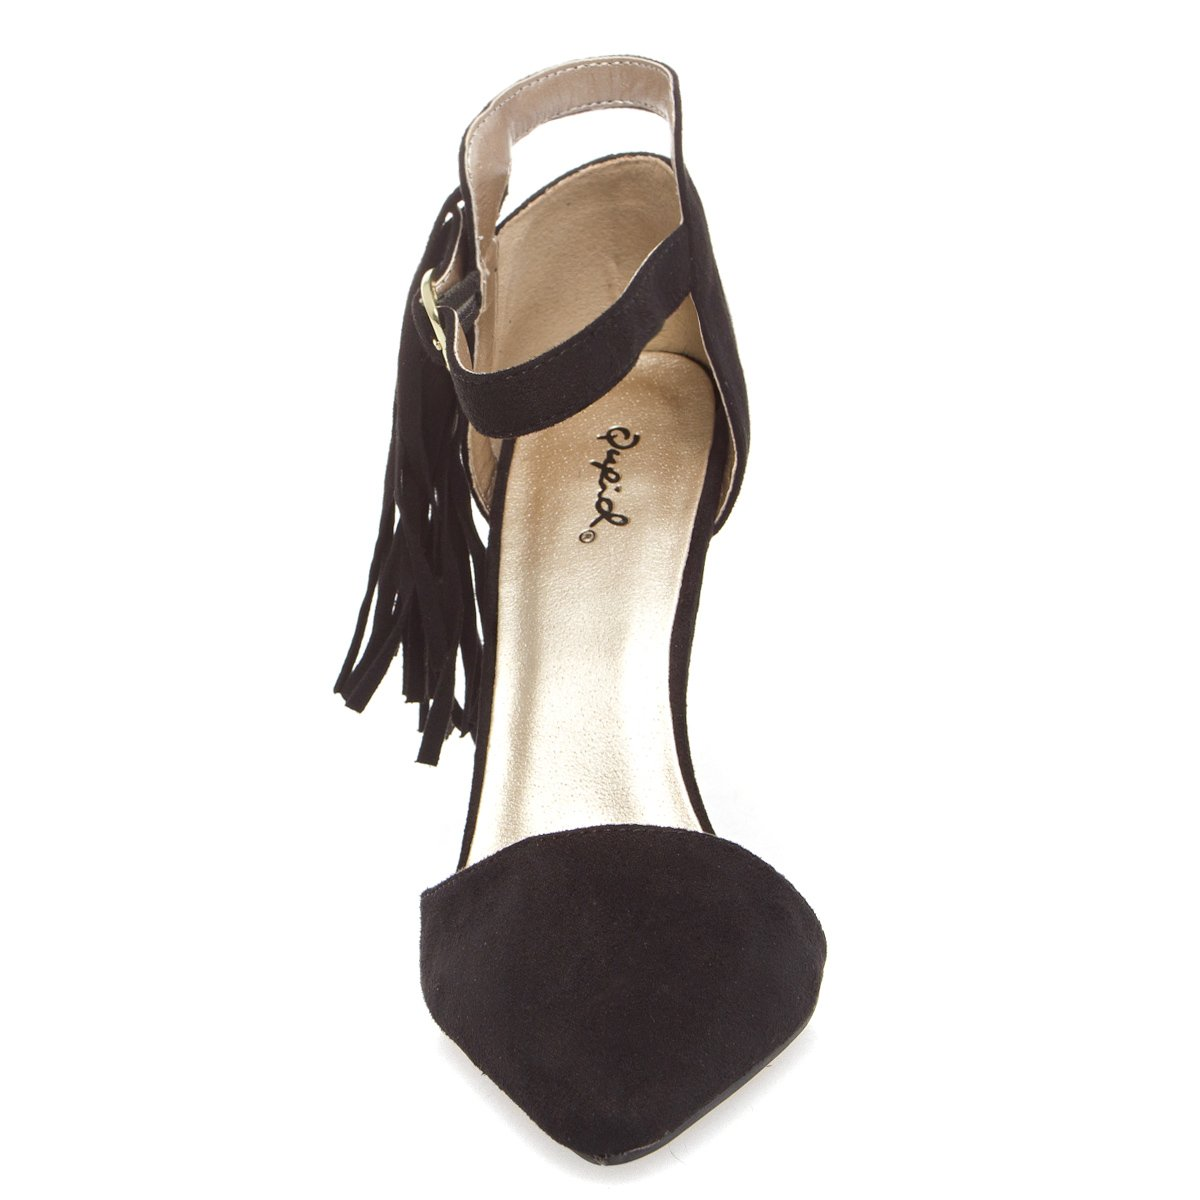 V-Luxury Womens 10-mixi89 Pointy Toe High Heel Ankle Strap Stiletto Pumps